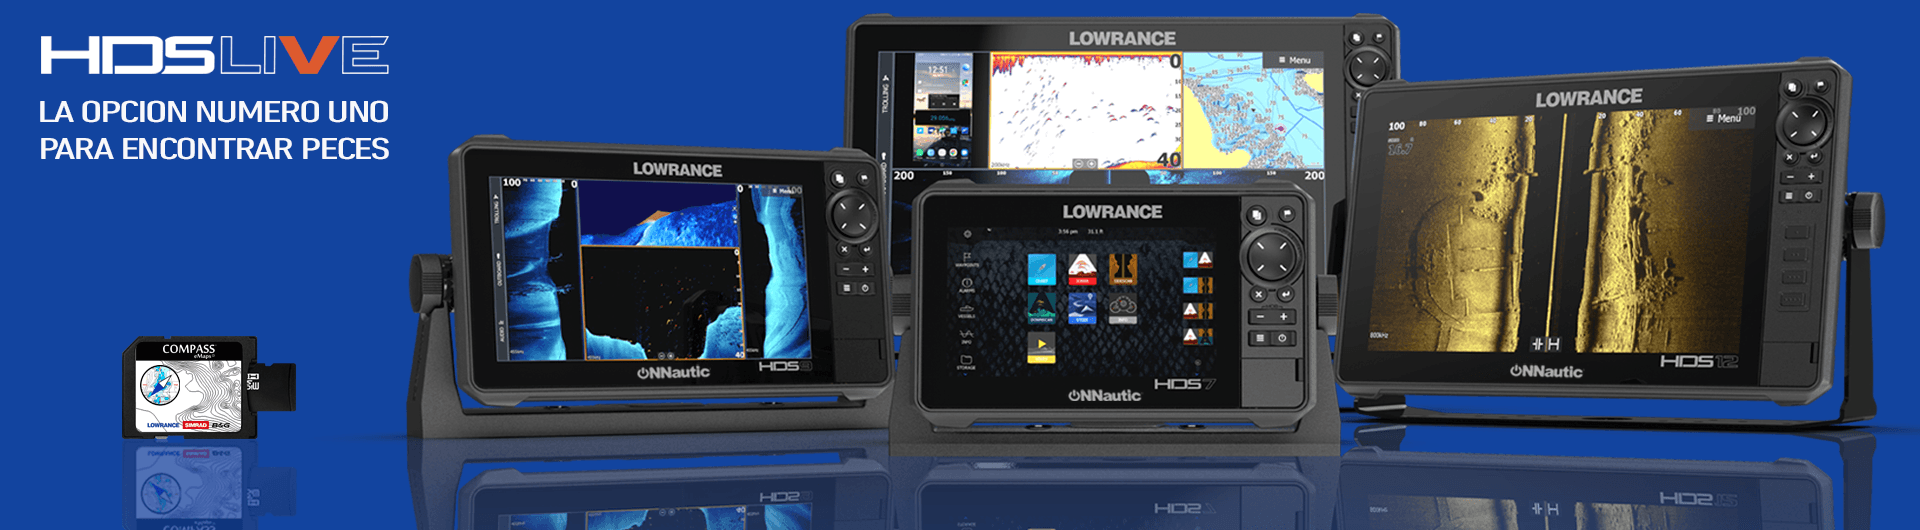 Lowrance HDS Live ONNautic